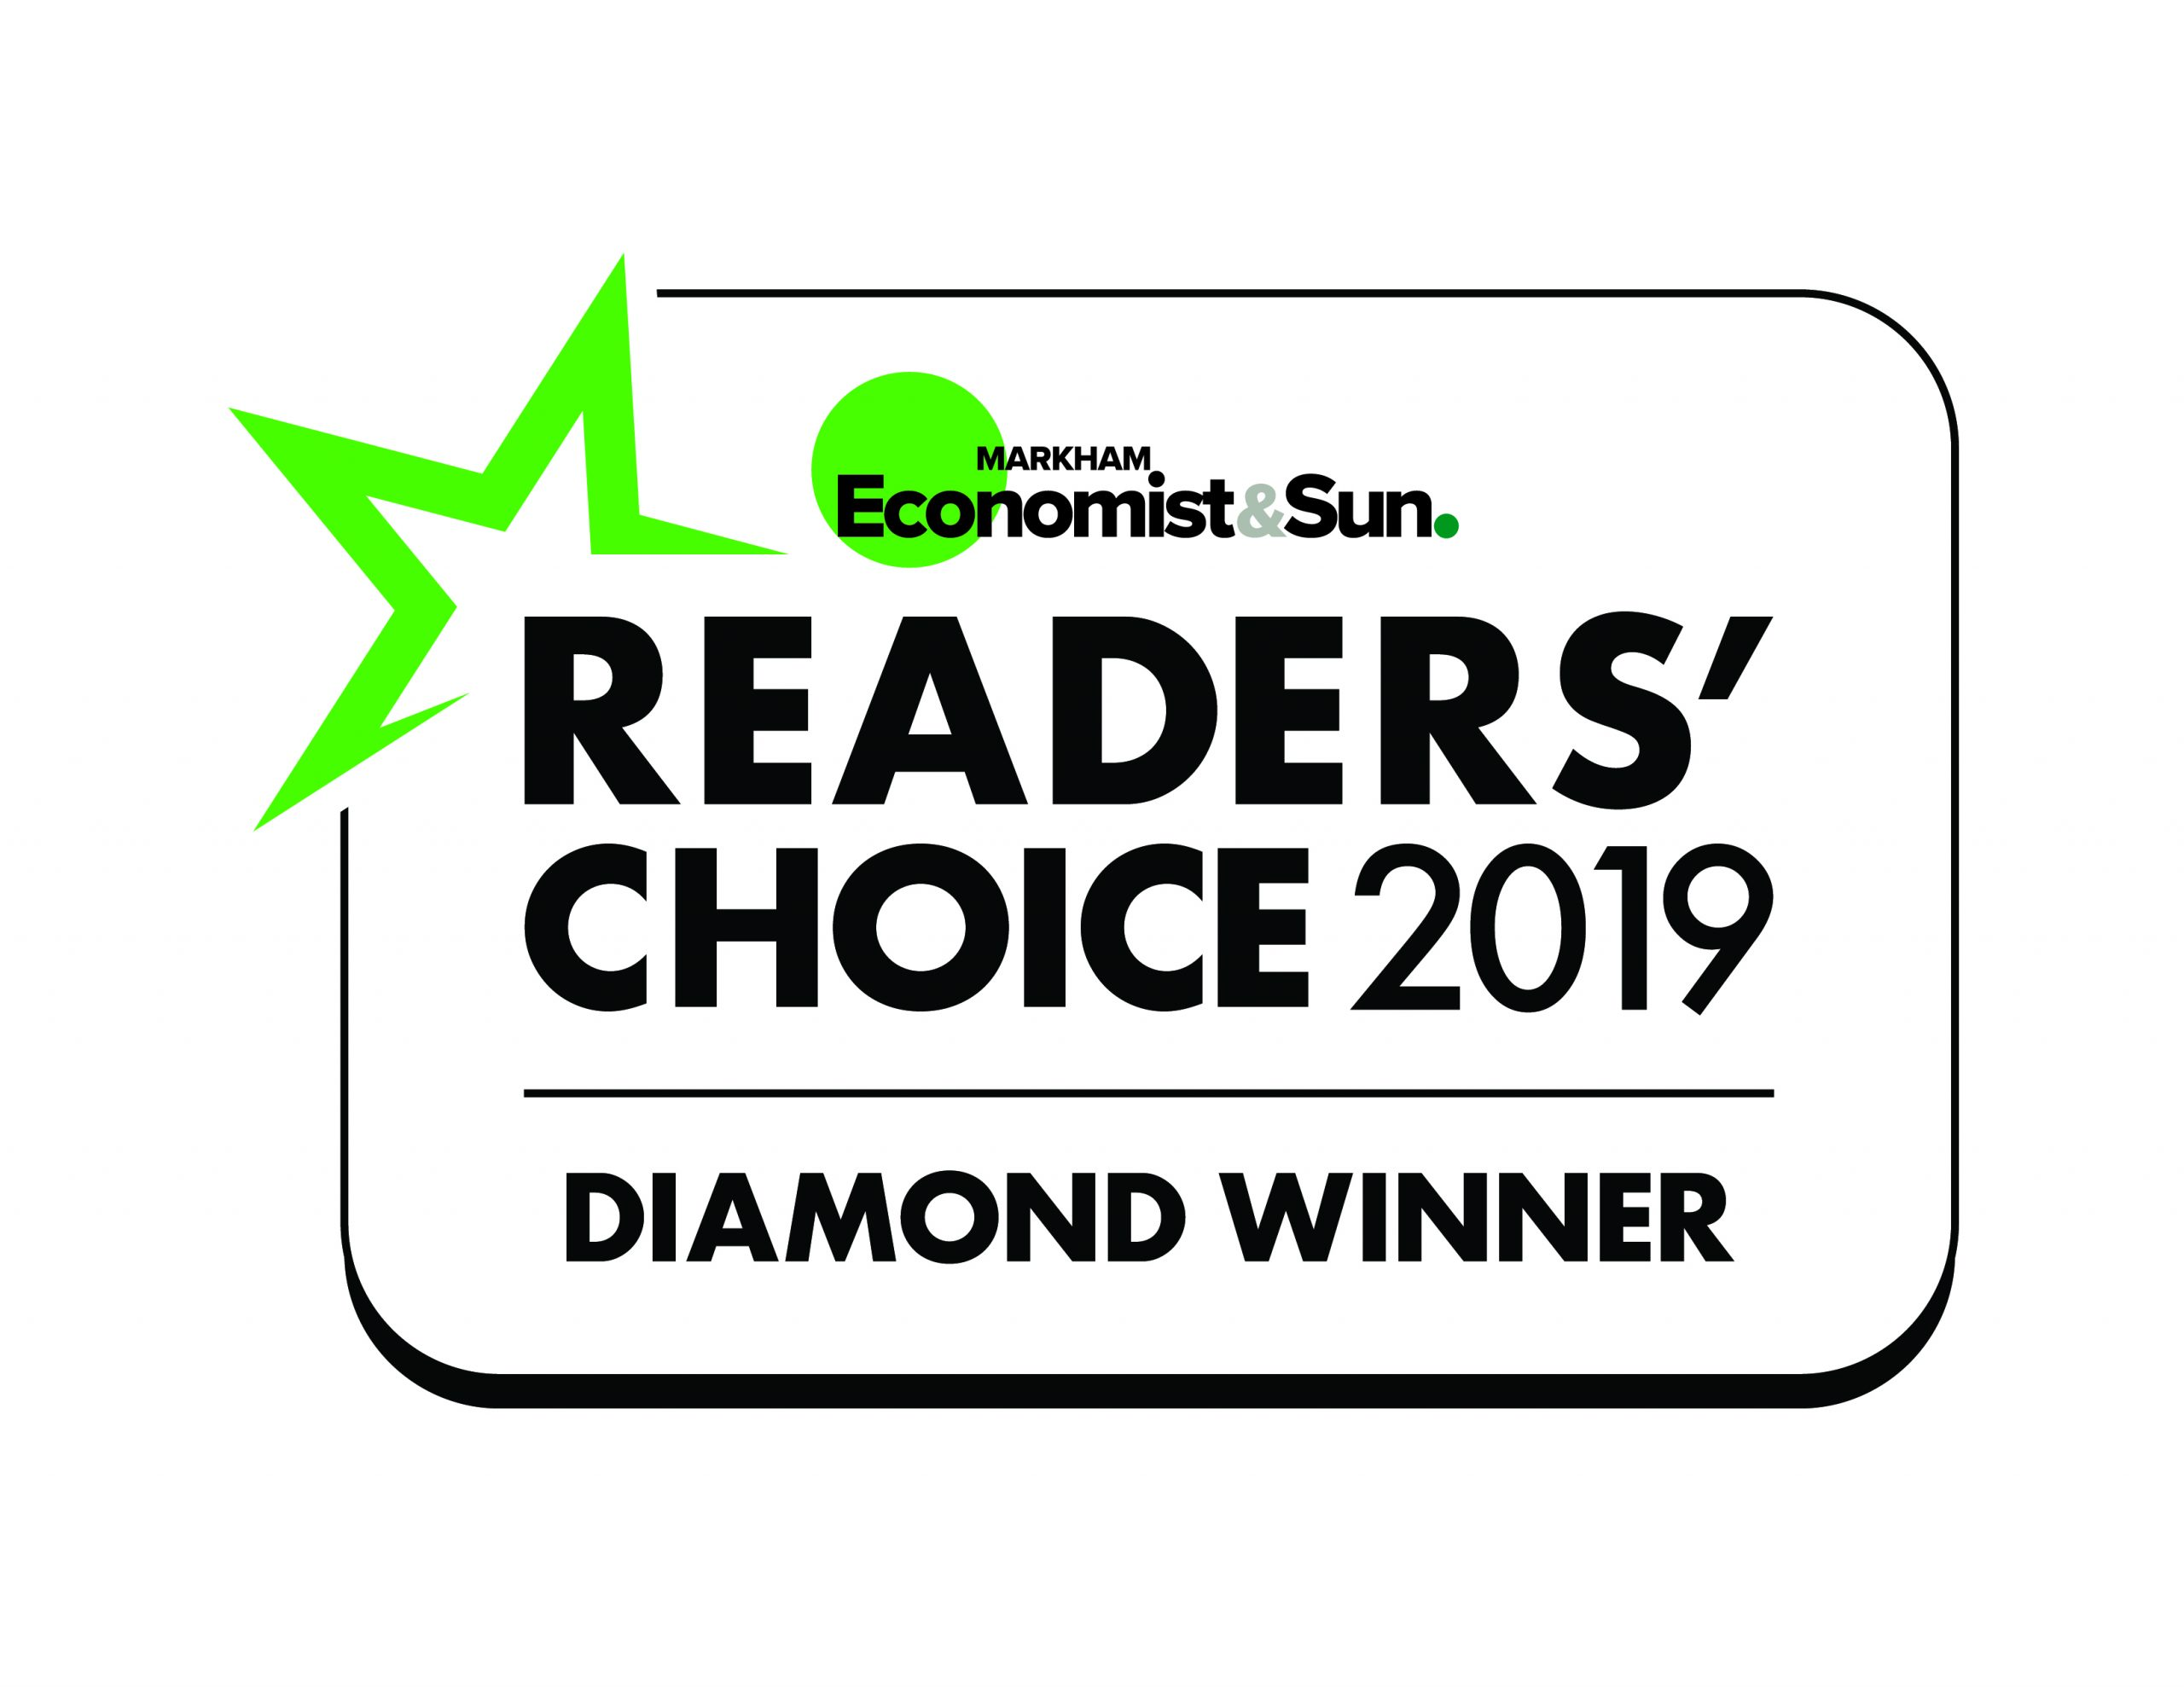 Readers Choice 2019 Diamond Winner